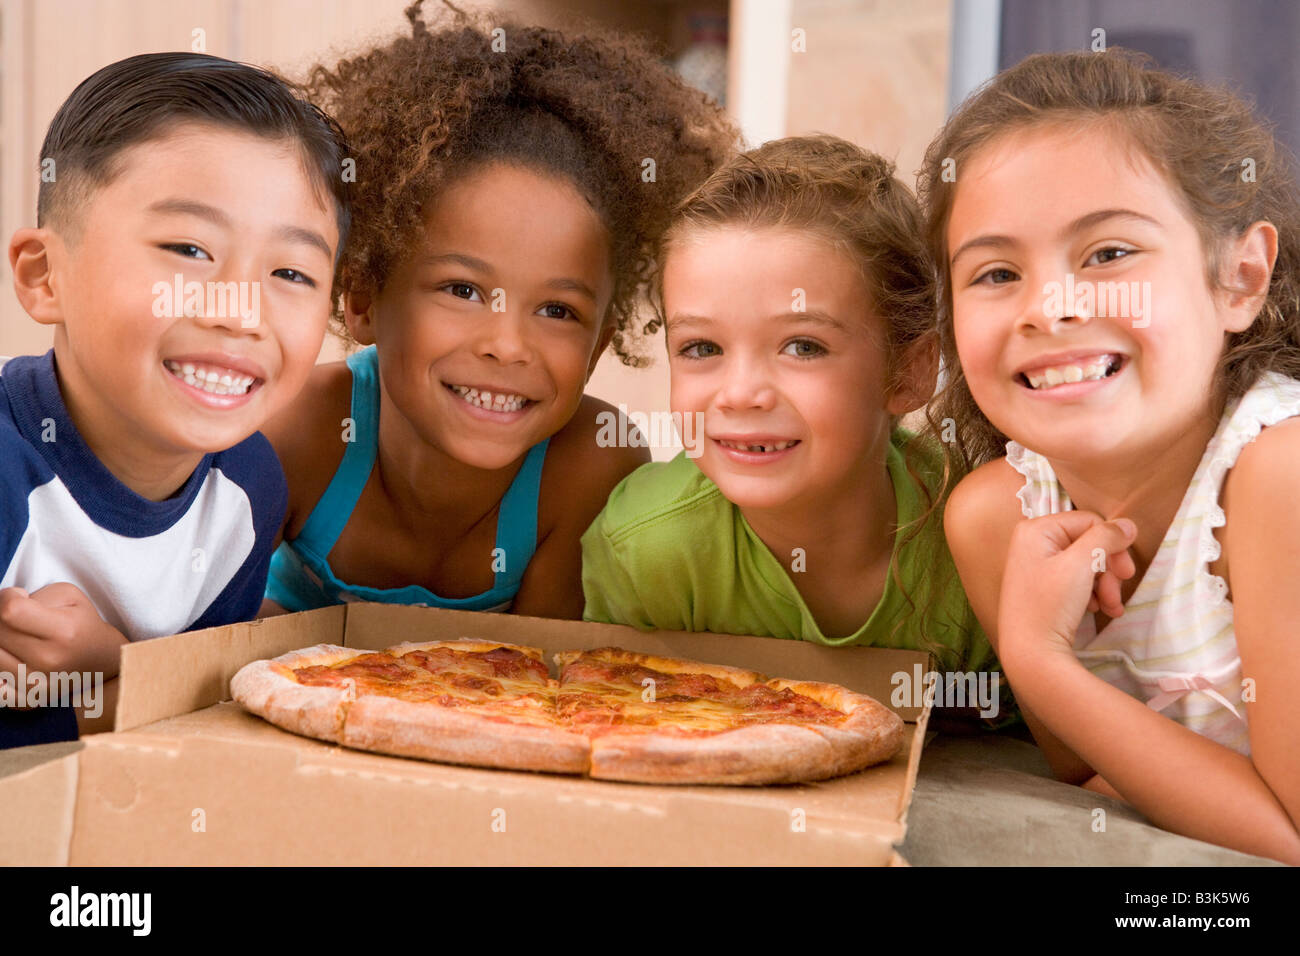 Four young children indoors with pizza smiling - Stock Image